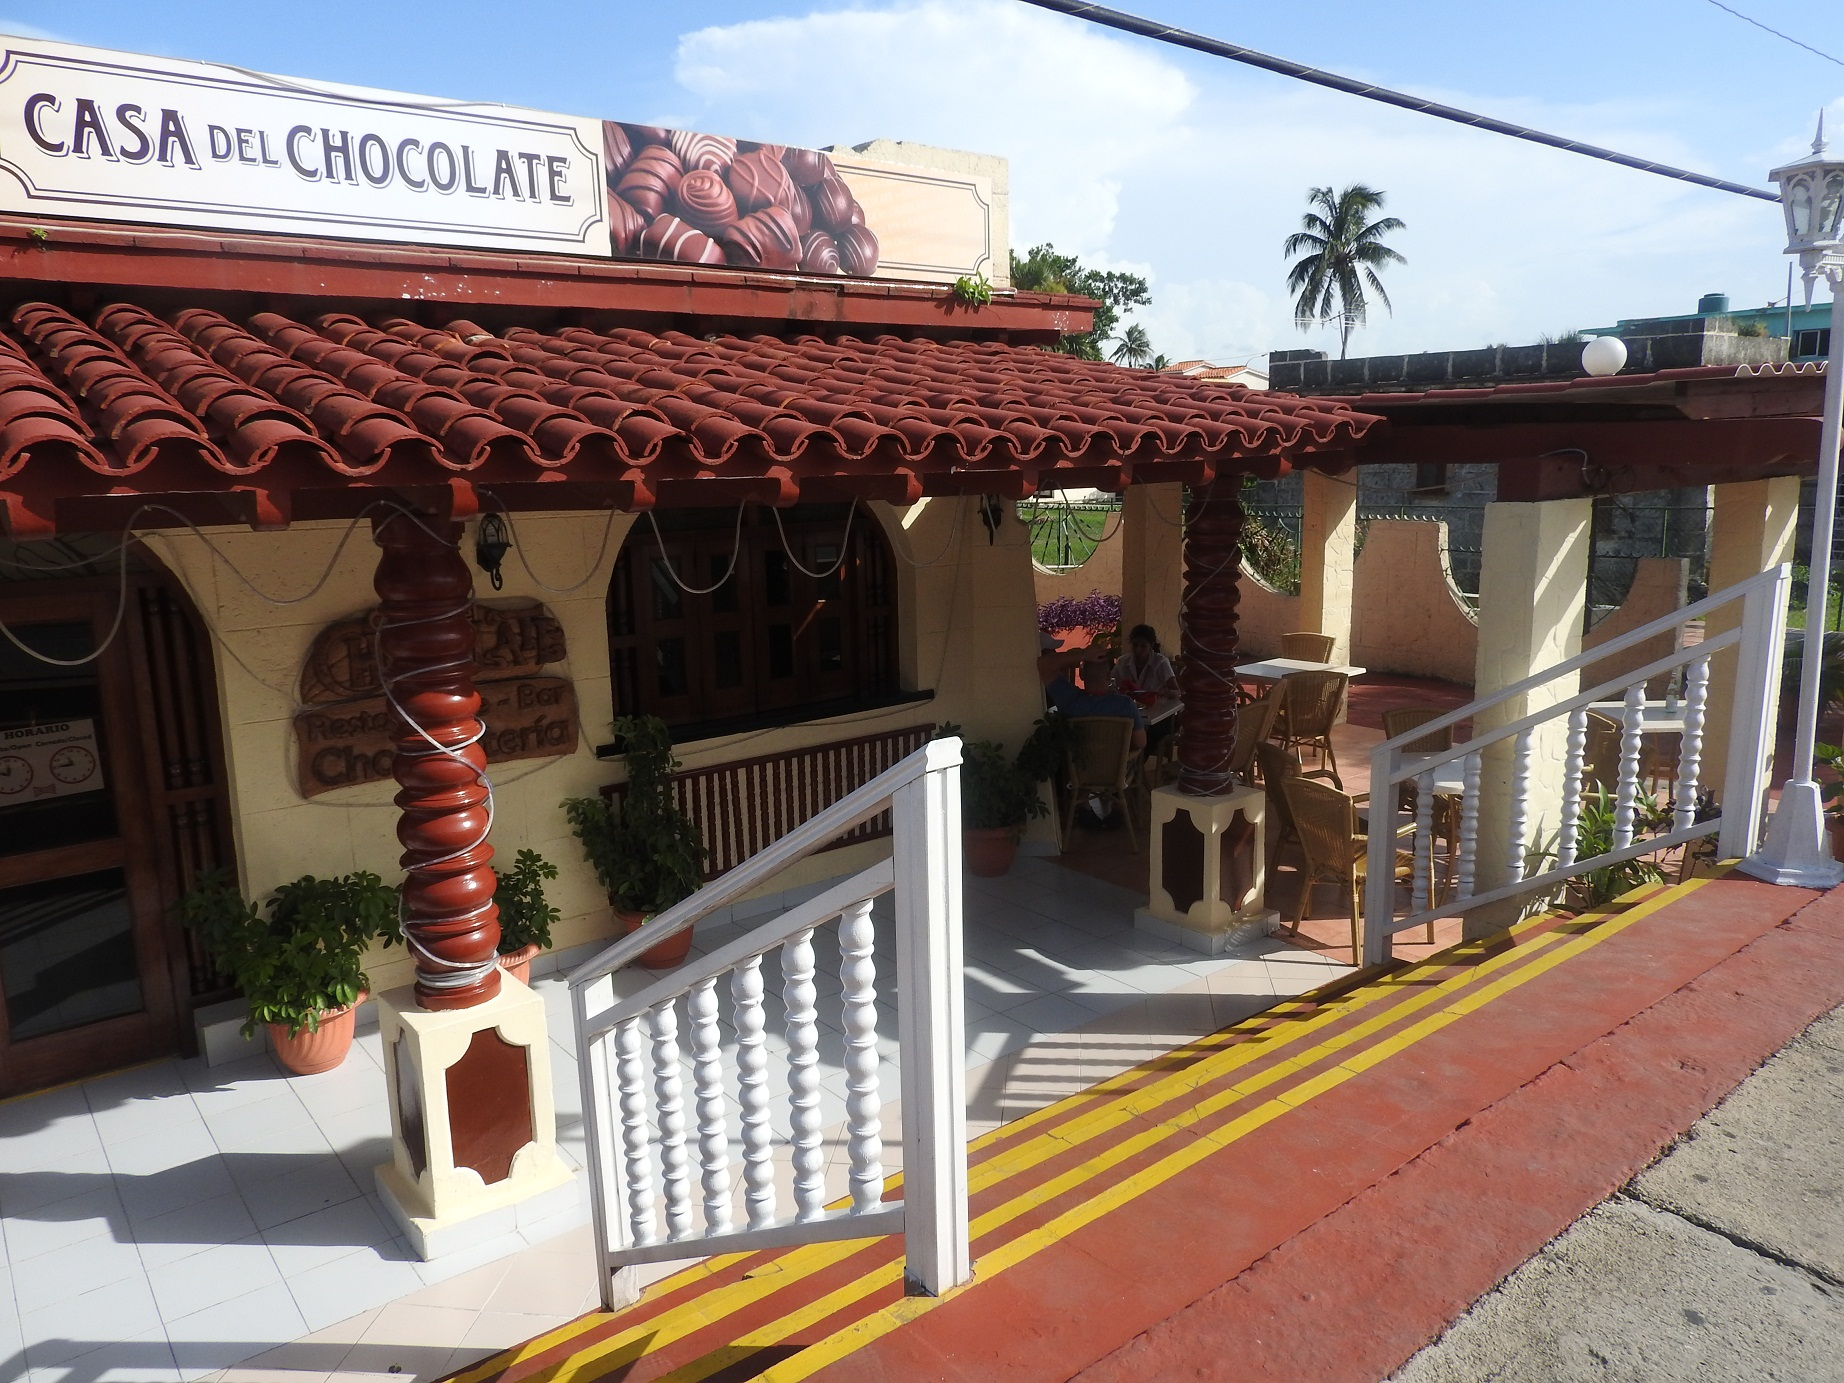 Casa del Chocolate in Varadero